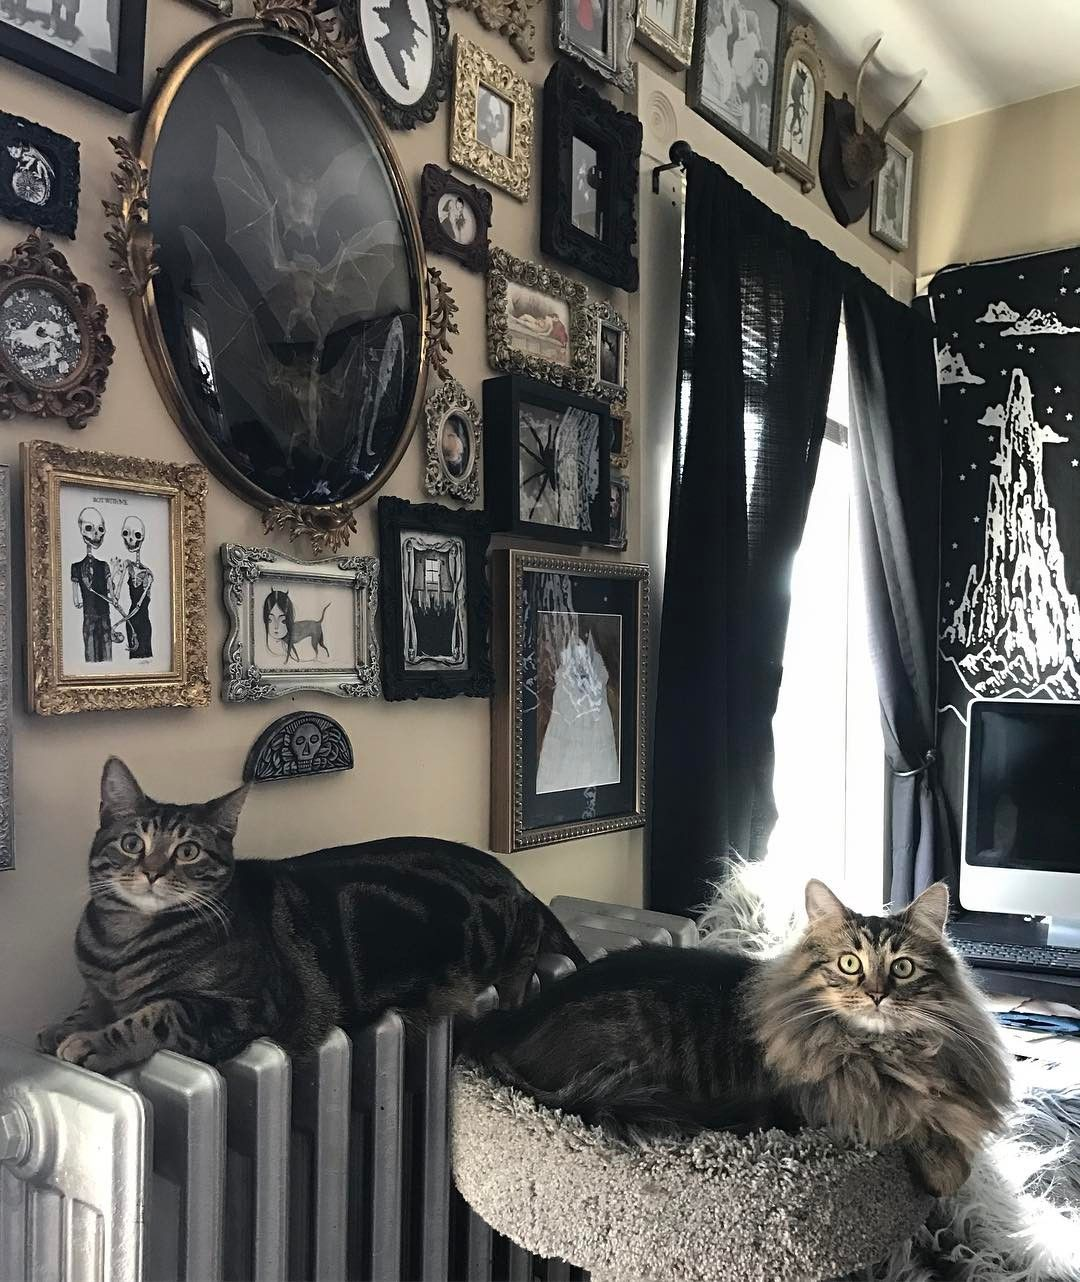 "Photo of ℭ𝔥𝔞𝔫𝔡𝔯𝔞 𝔊𝔬𝔯𝔢𝔚𝔦𝔱𝔠𝔥 🌙✨ on Instagram: ""Here's another picture of my kitties in front of this wall 😻🖤🕷🦇✨"""